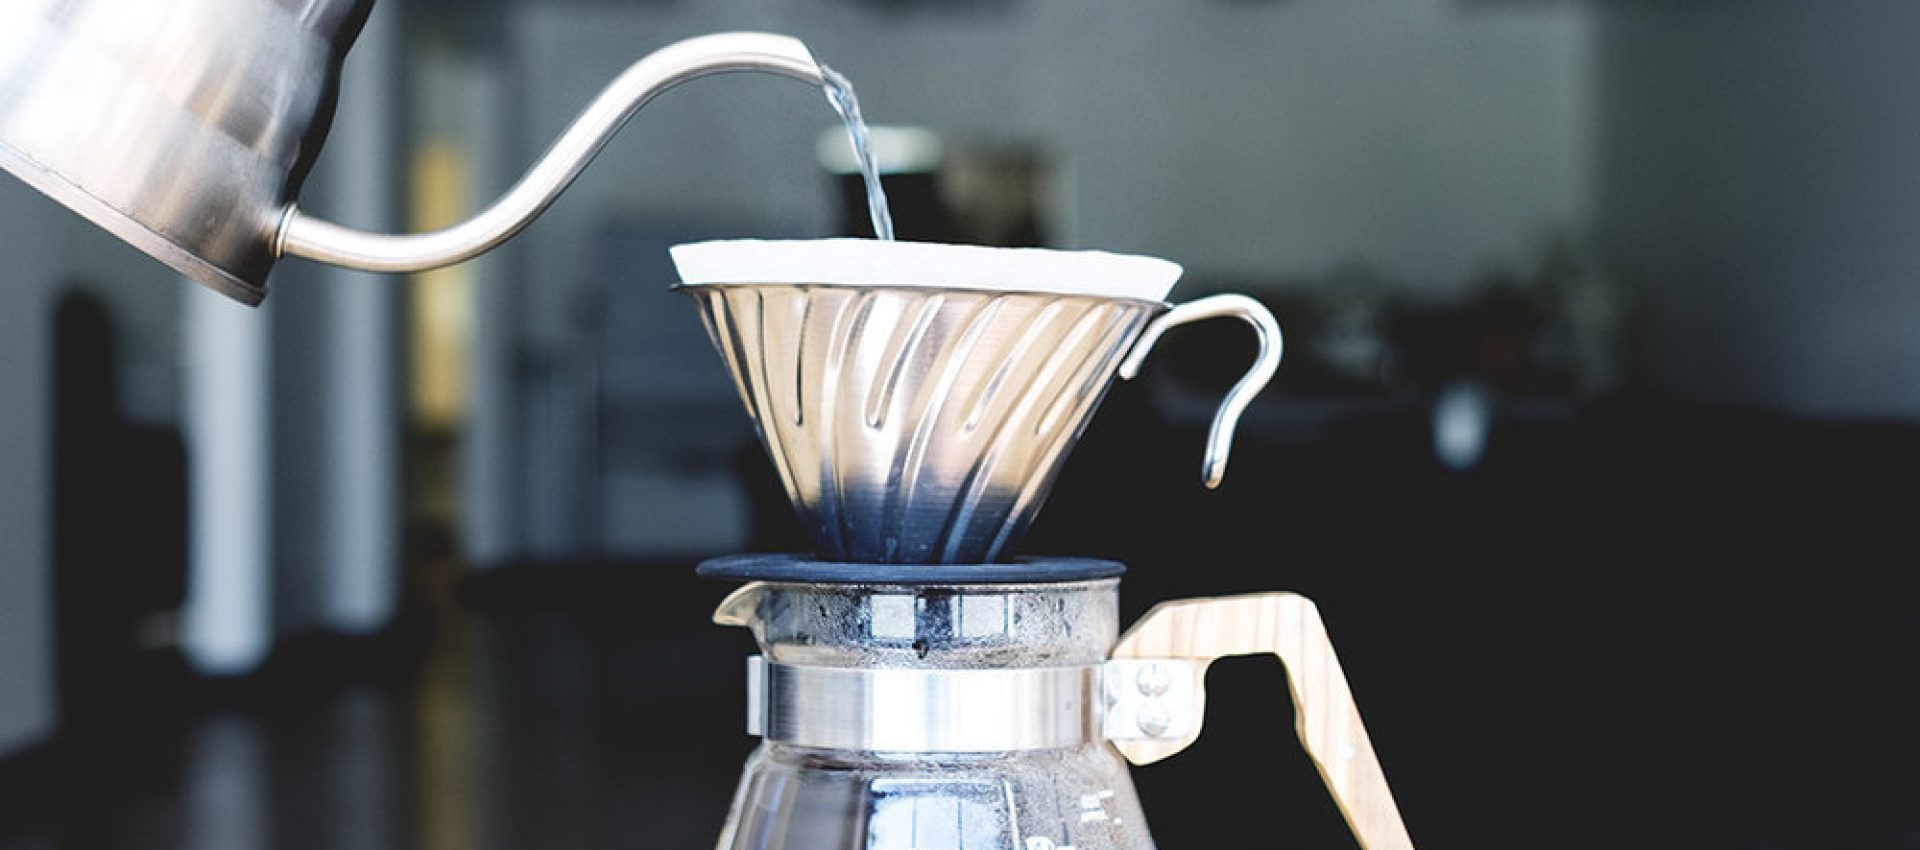 Three basic steps to making better coffee